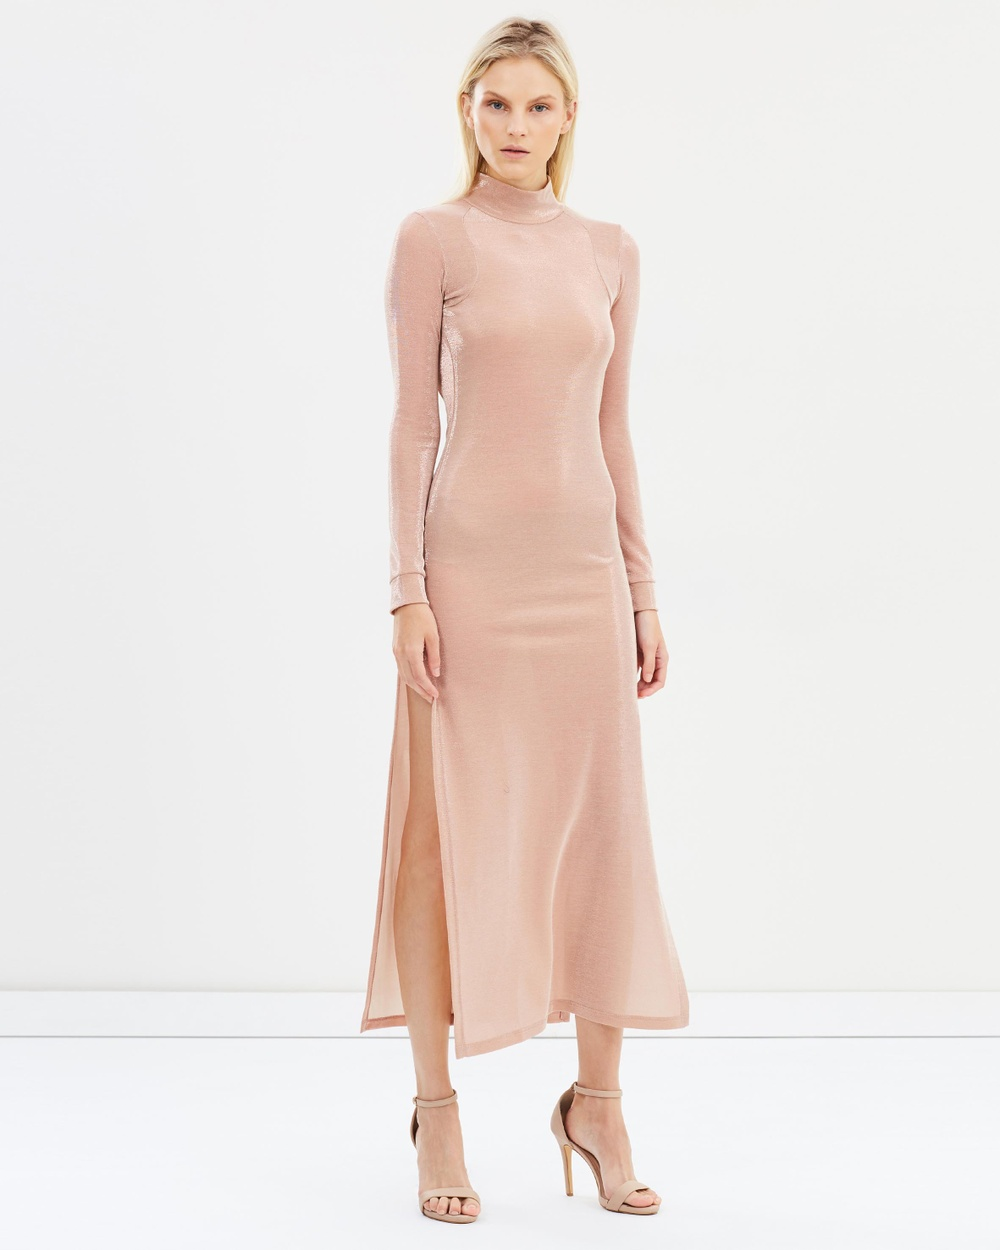 Michael Lo Sordo Backless Side Split Jersey Dress Dresses Nude Backless Side Split Jersey Dress